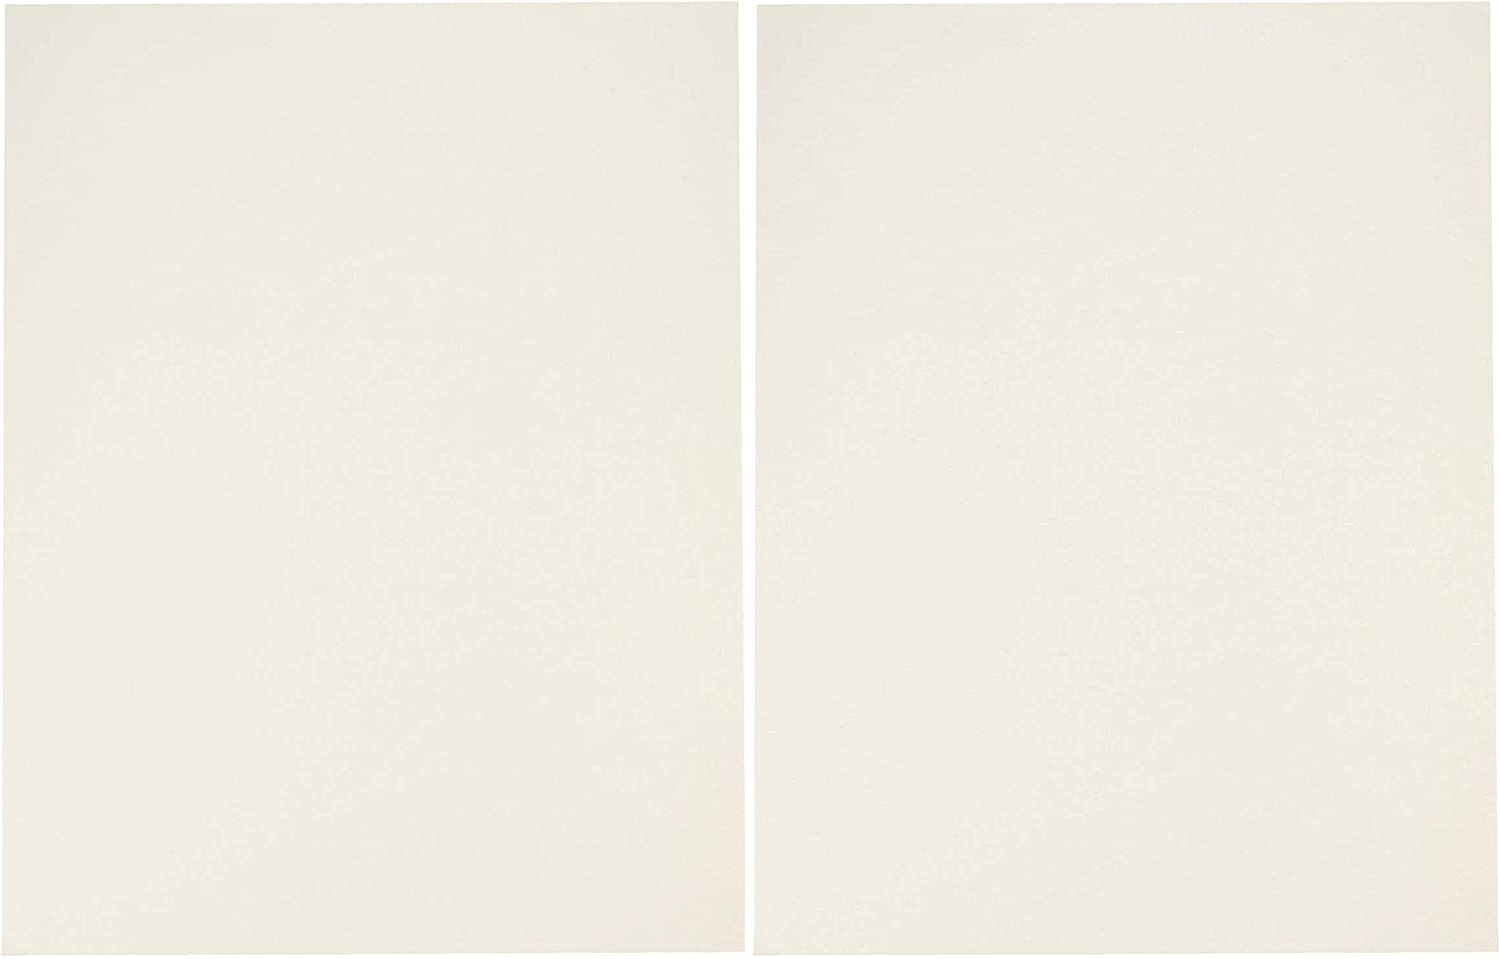 White 11 x 14 Inches School Smart Poster Board Fоur Paсk Pack of 25-1371698